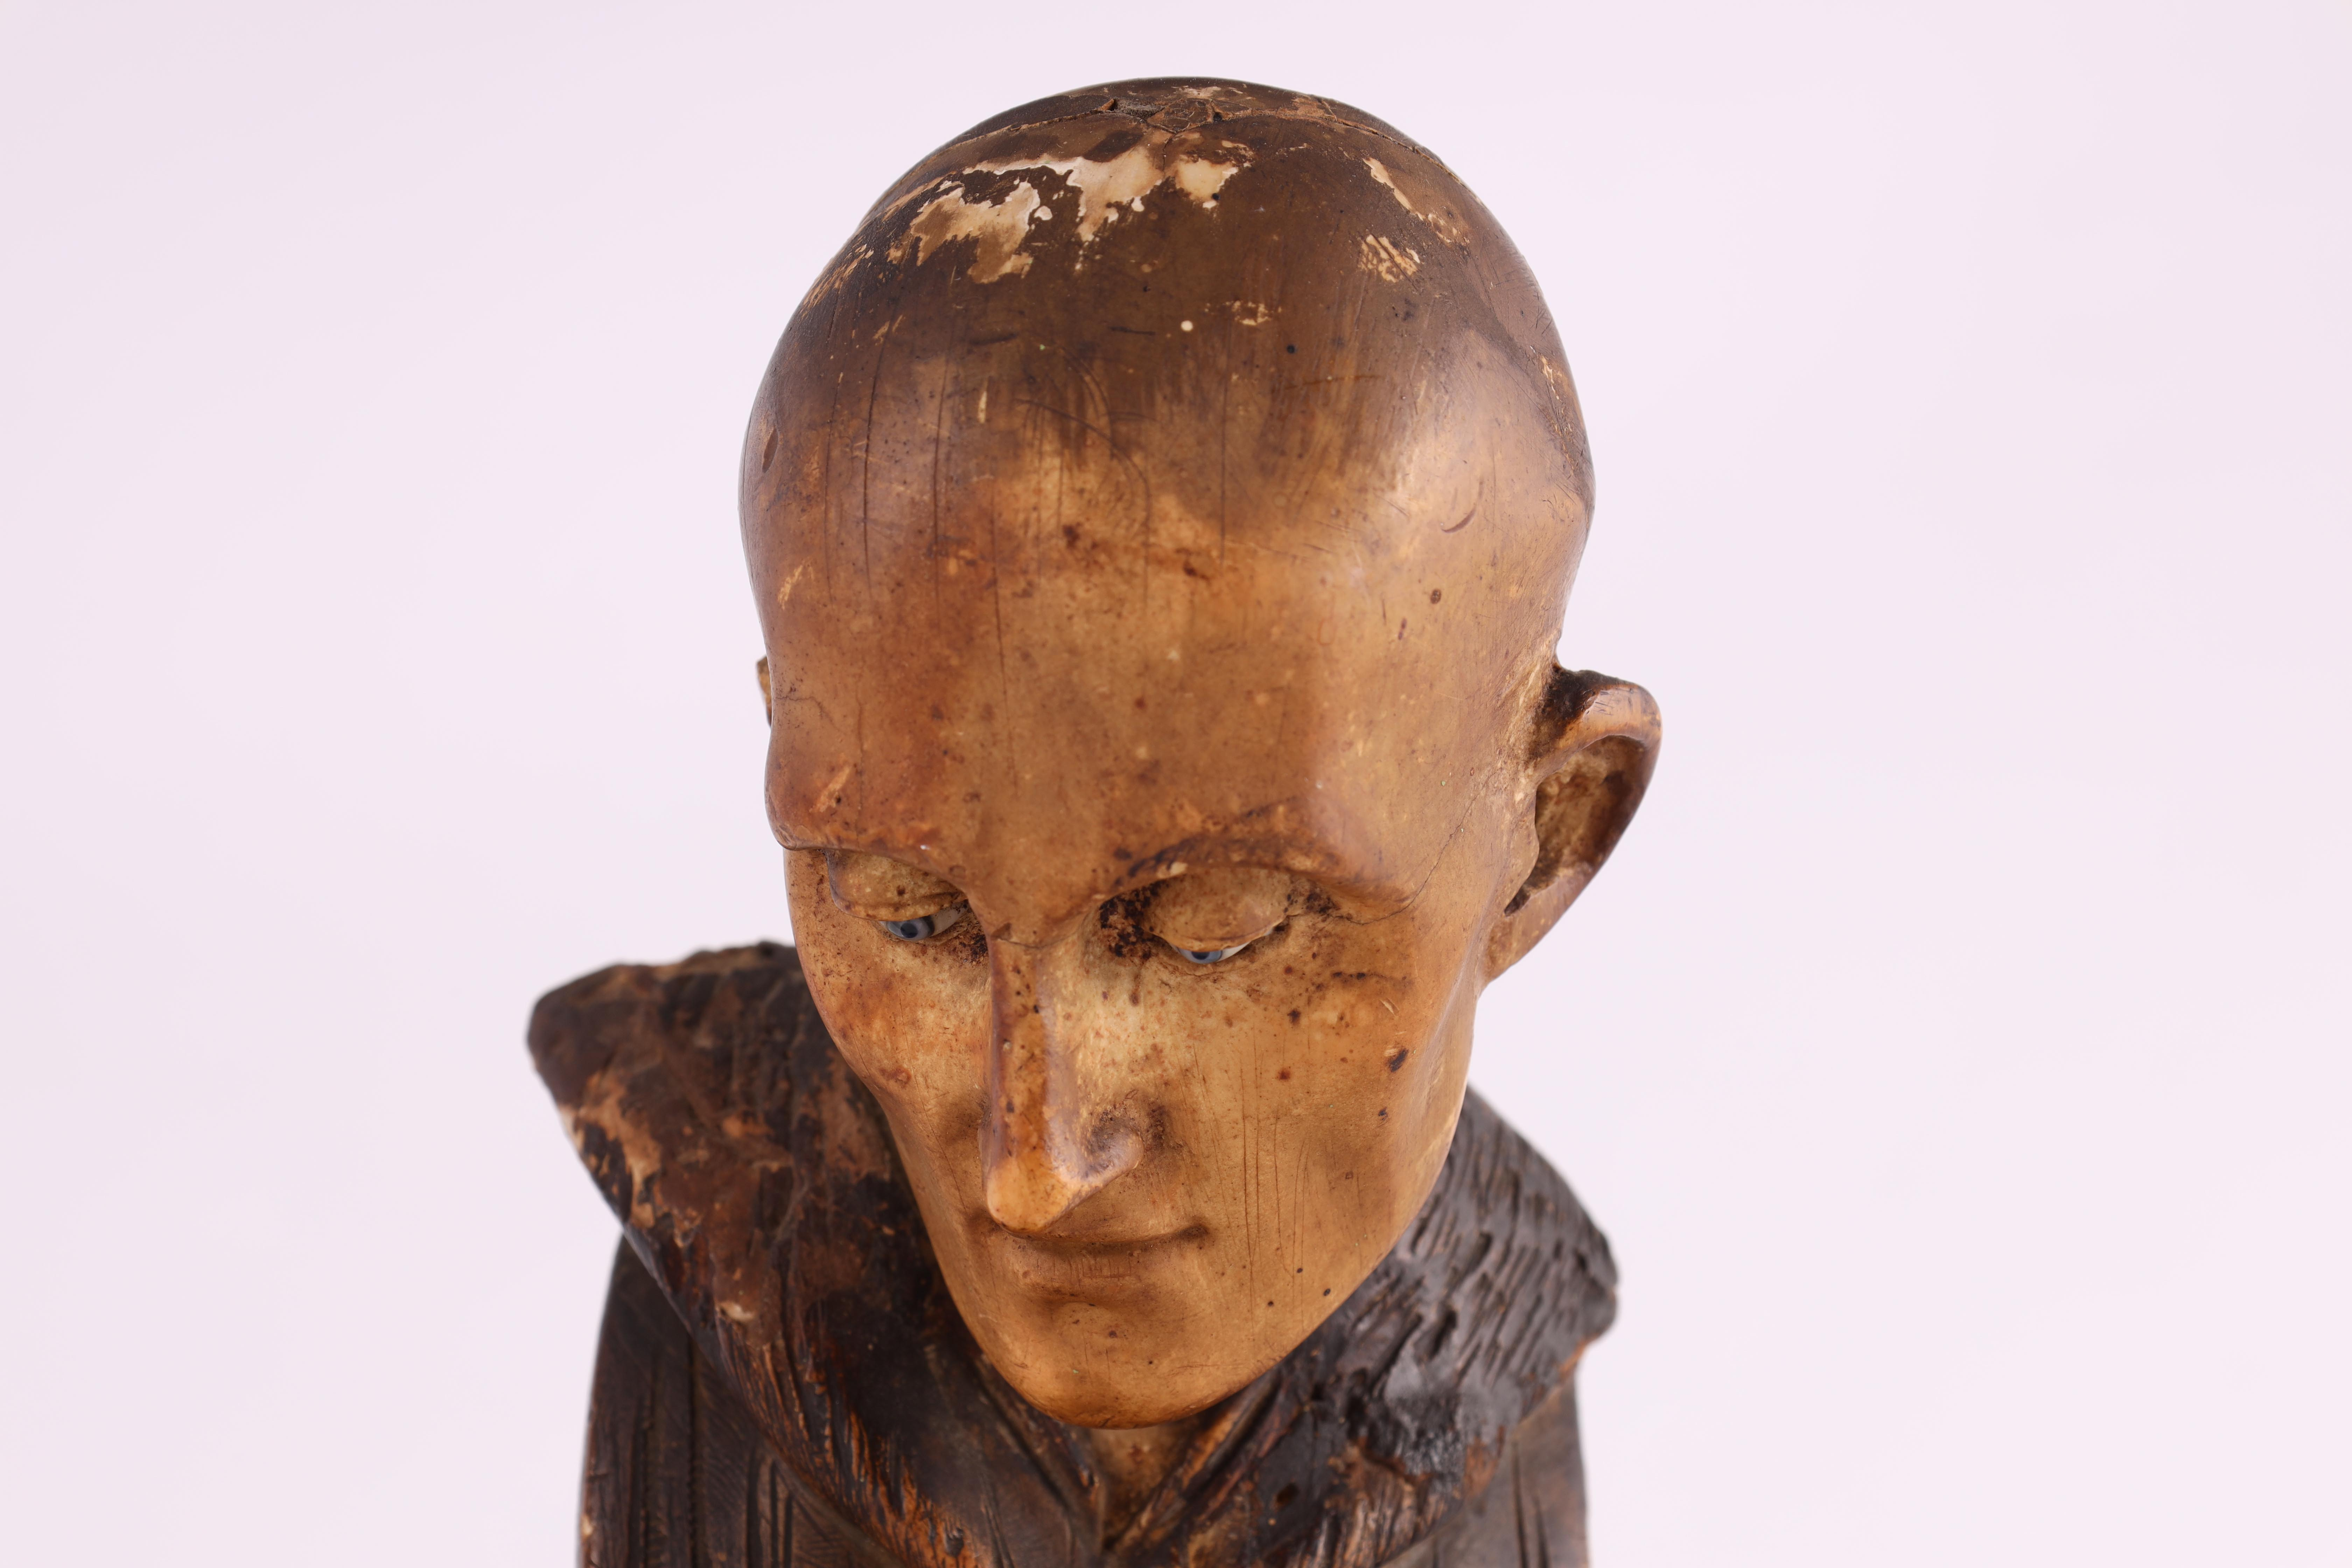 A 19TH CENTURY POLYCHROME PLASTER BUST modelled as a monk with blue eyes mounted on a black marble - Image 3 of 5